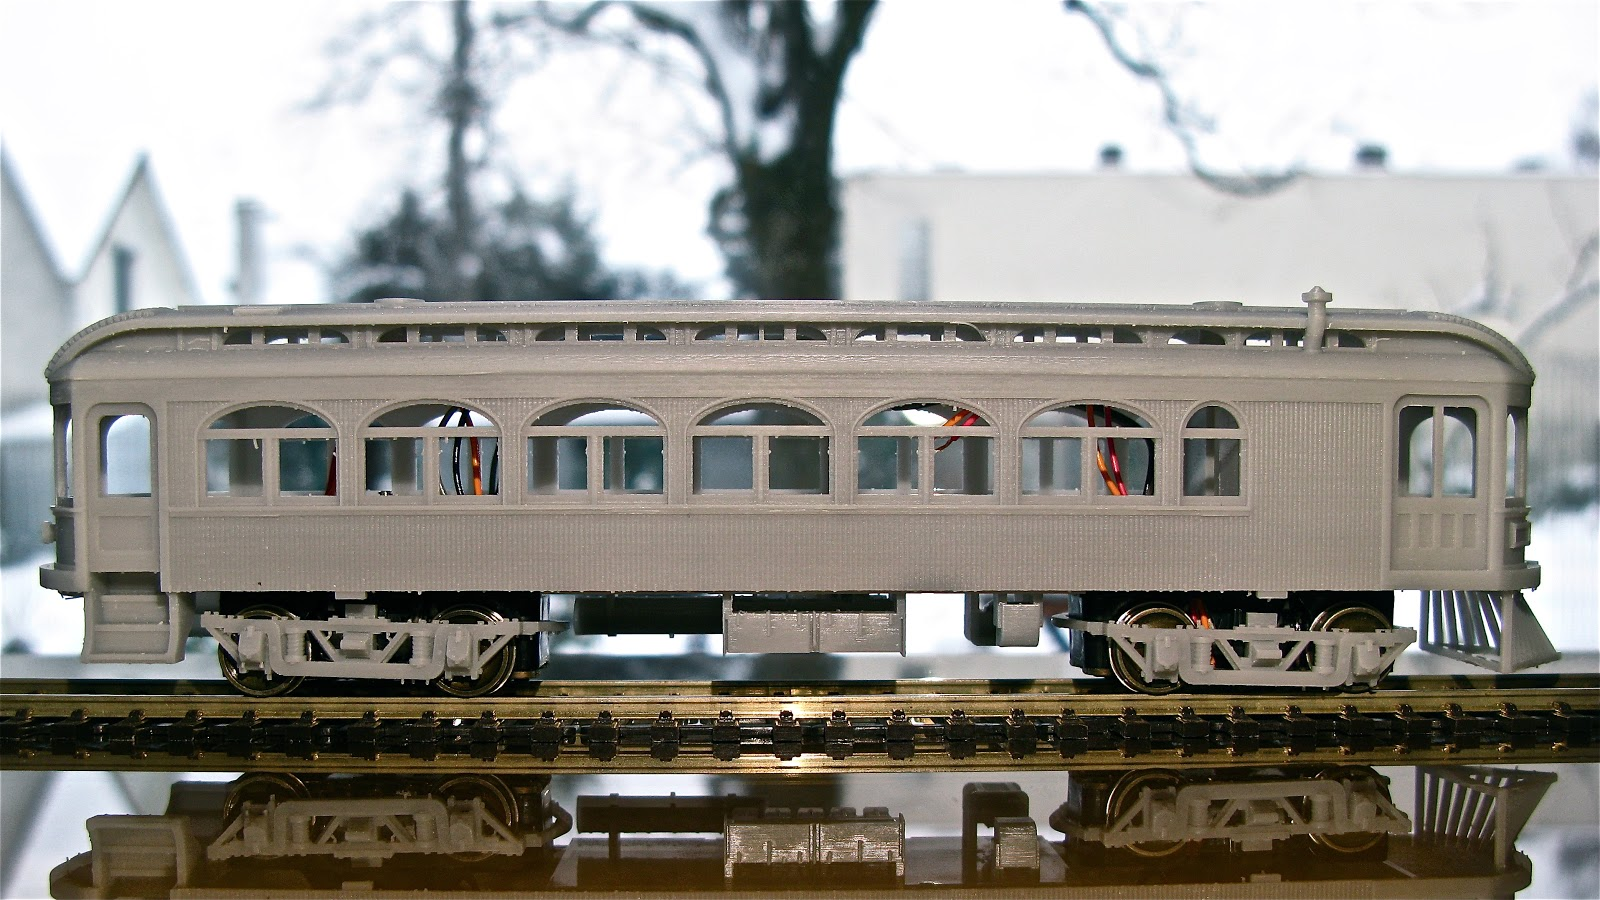 Interurban Railways The Oneonta Project 5 Side View